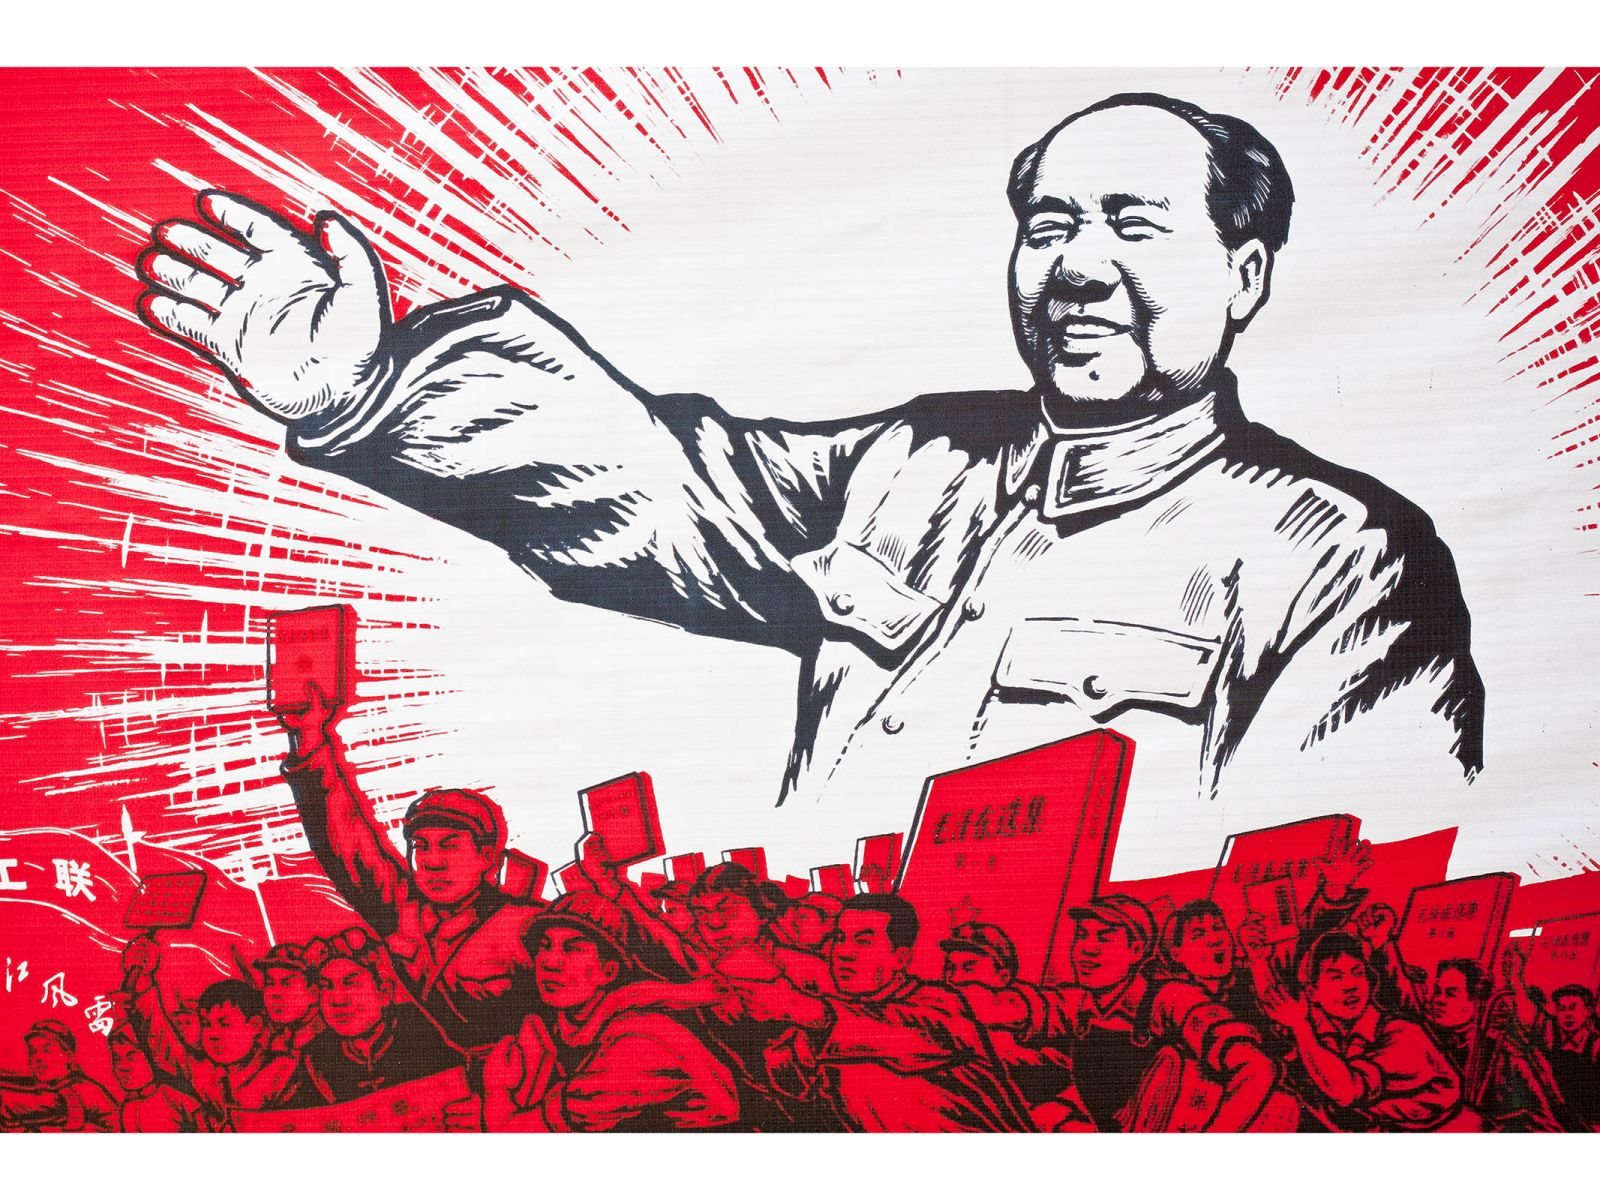 communist china essay Essay, term paper research paper on communism by colin mackerras both deal with the rise of communism, the former in the soviet union and the latter in china.